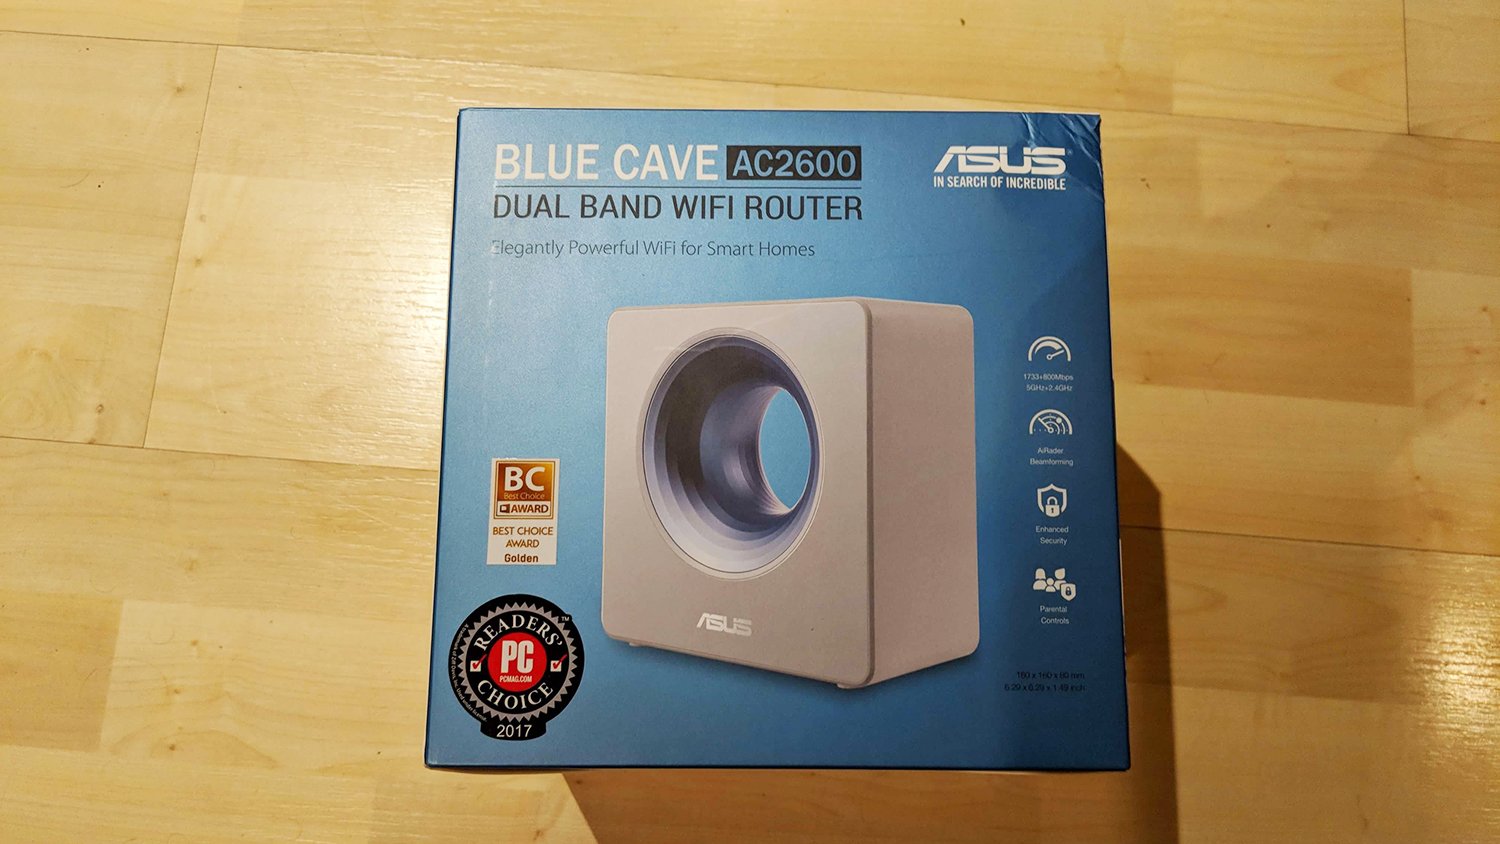 asus Blue Cave router - AC2600